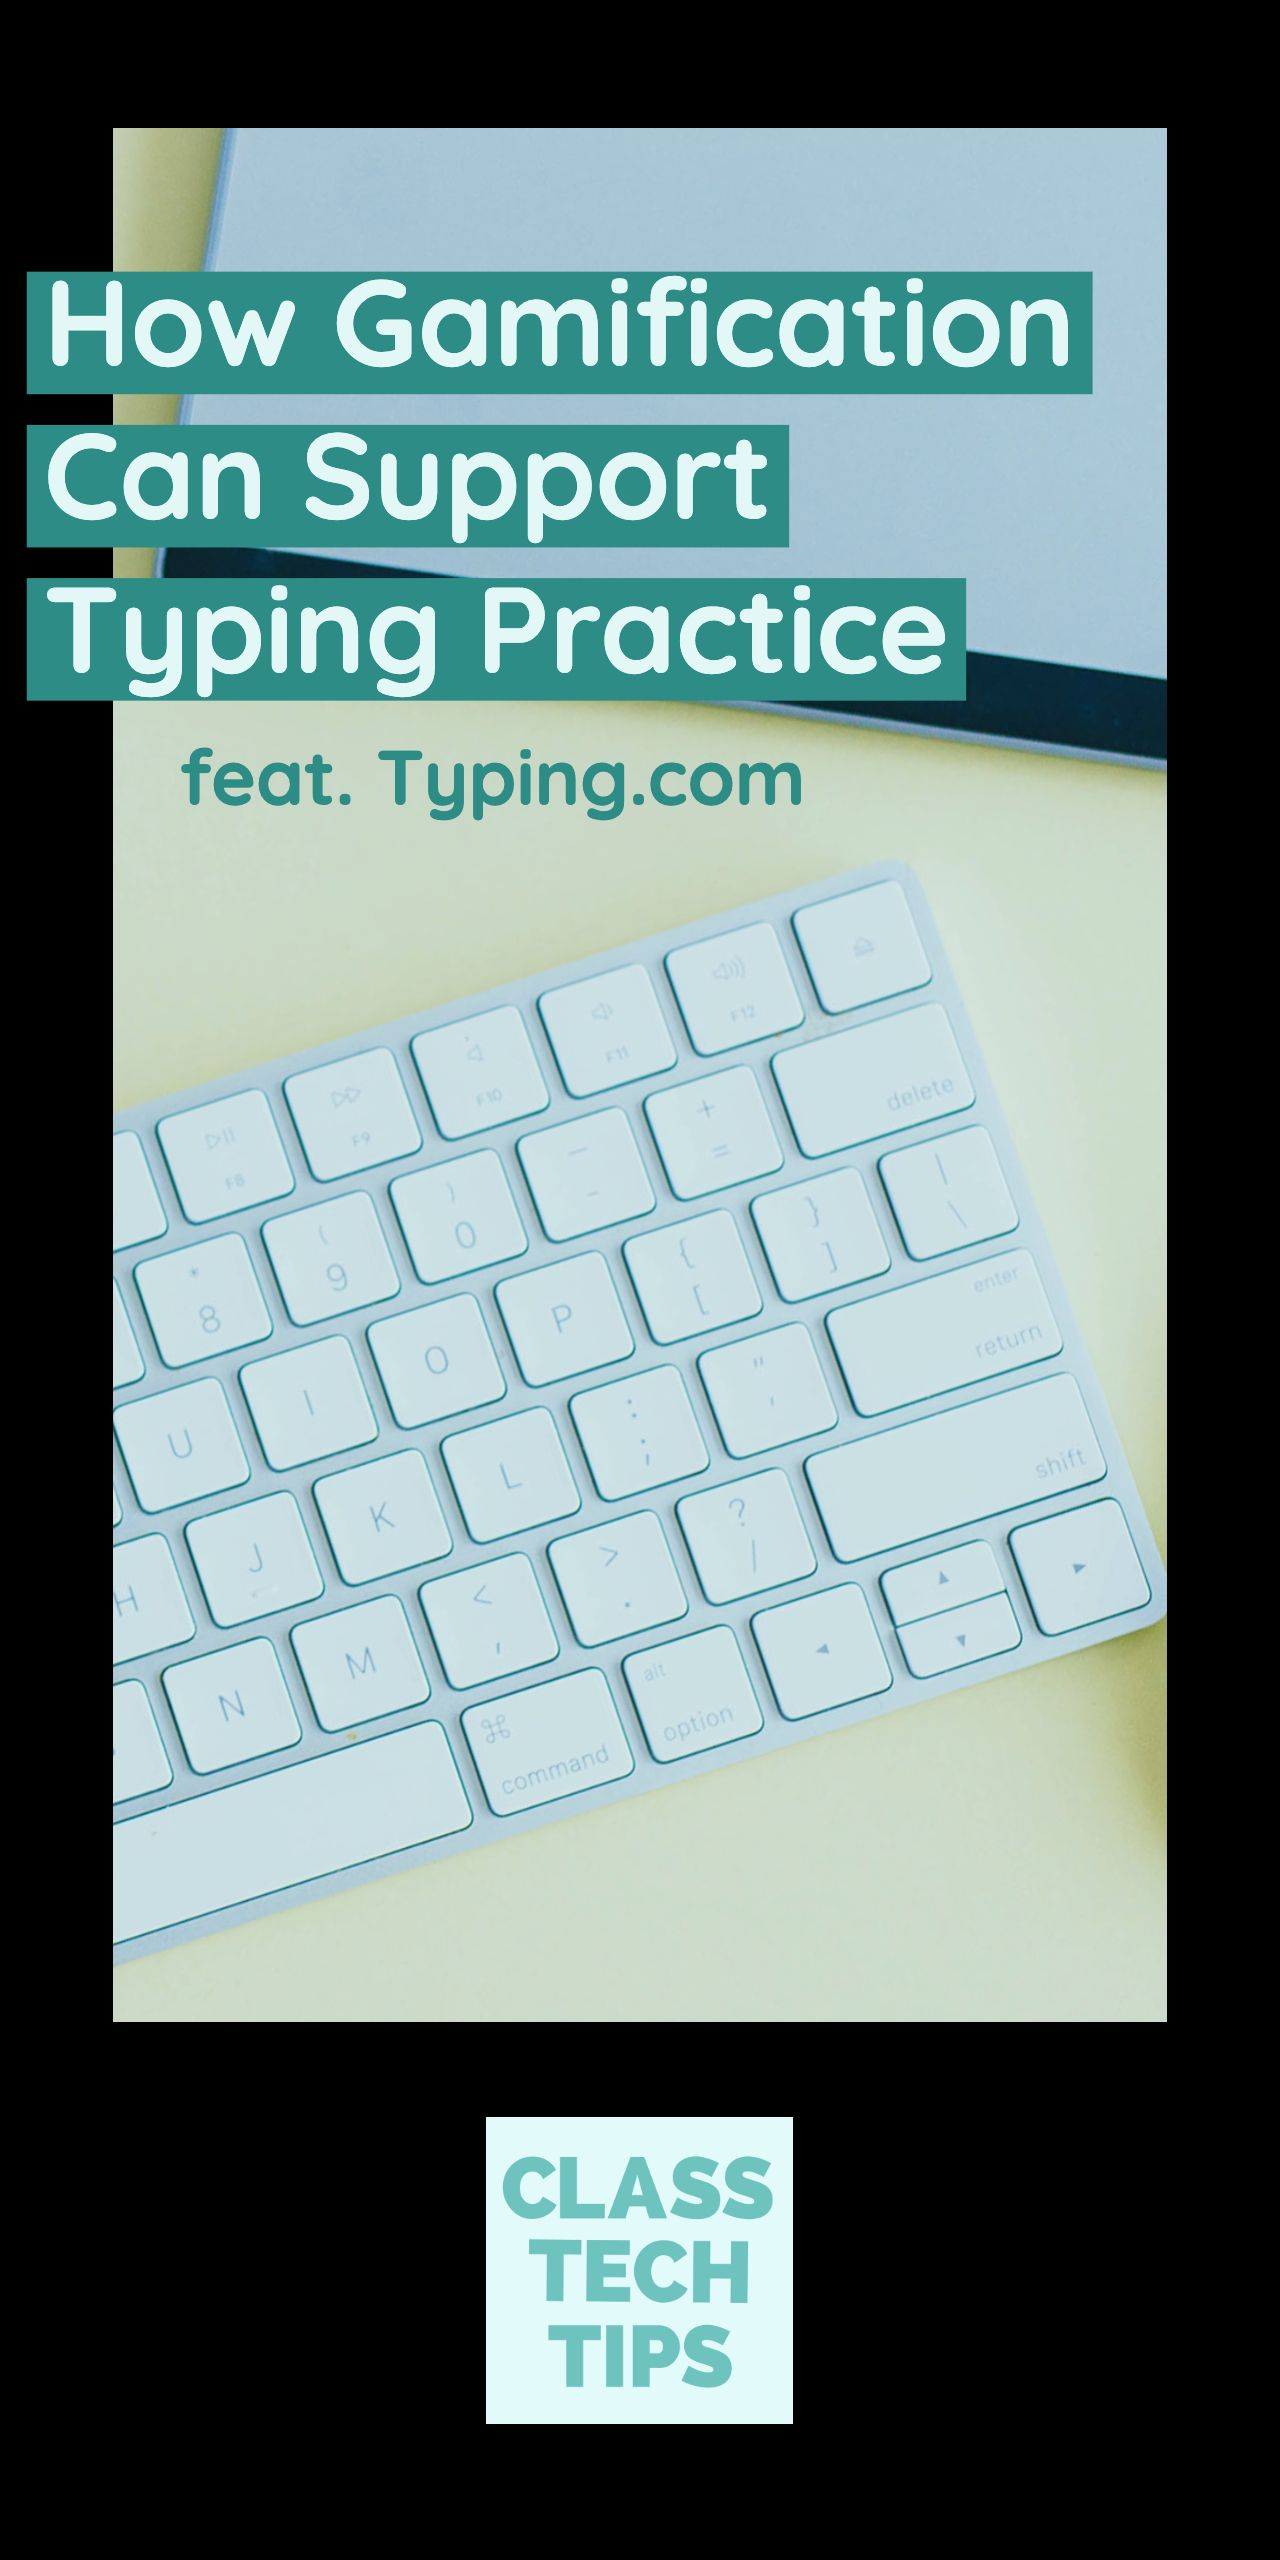 How Gamification Can Support Typing Practice